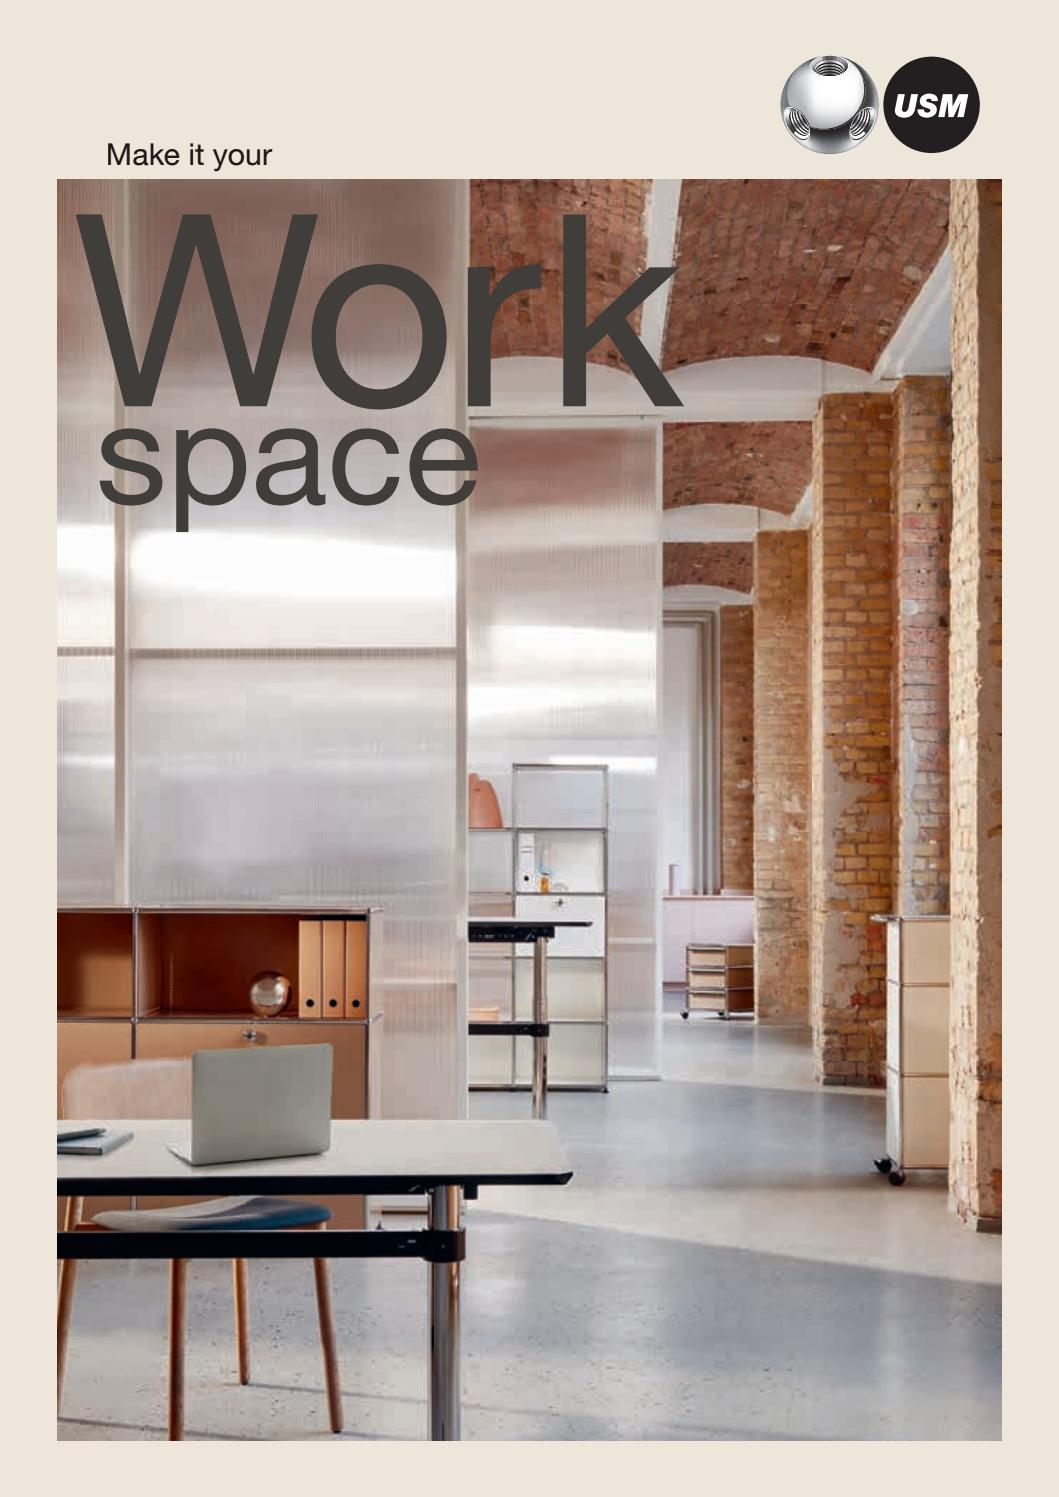 Xtra Usm Make It Your Workspace 2019 By Xtra Furniture Issuu